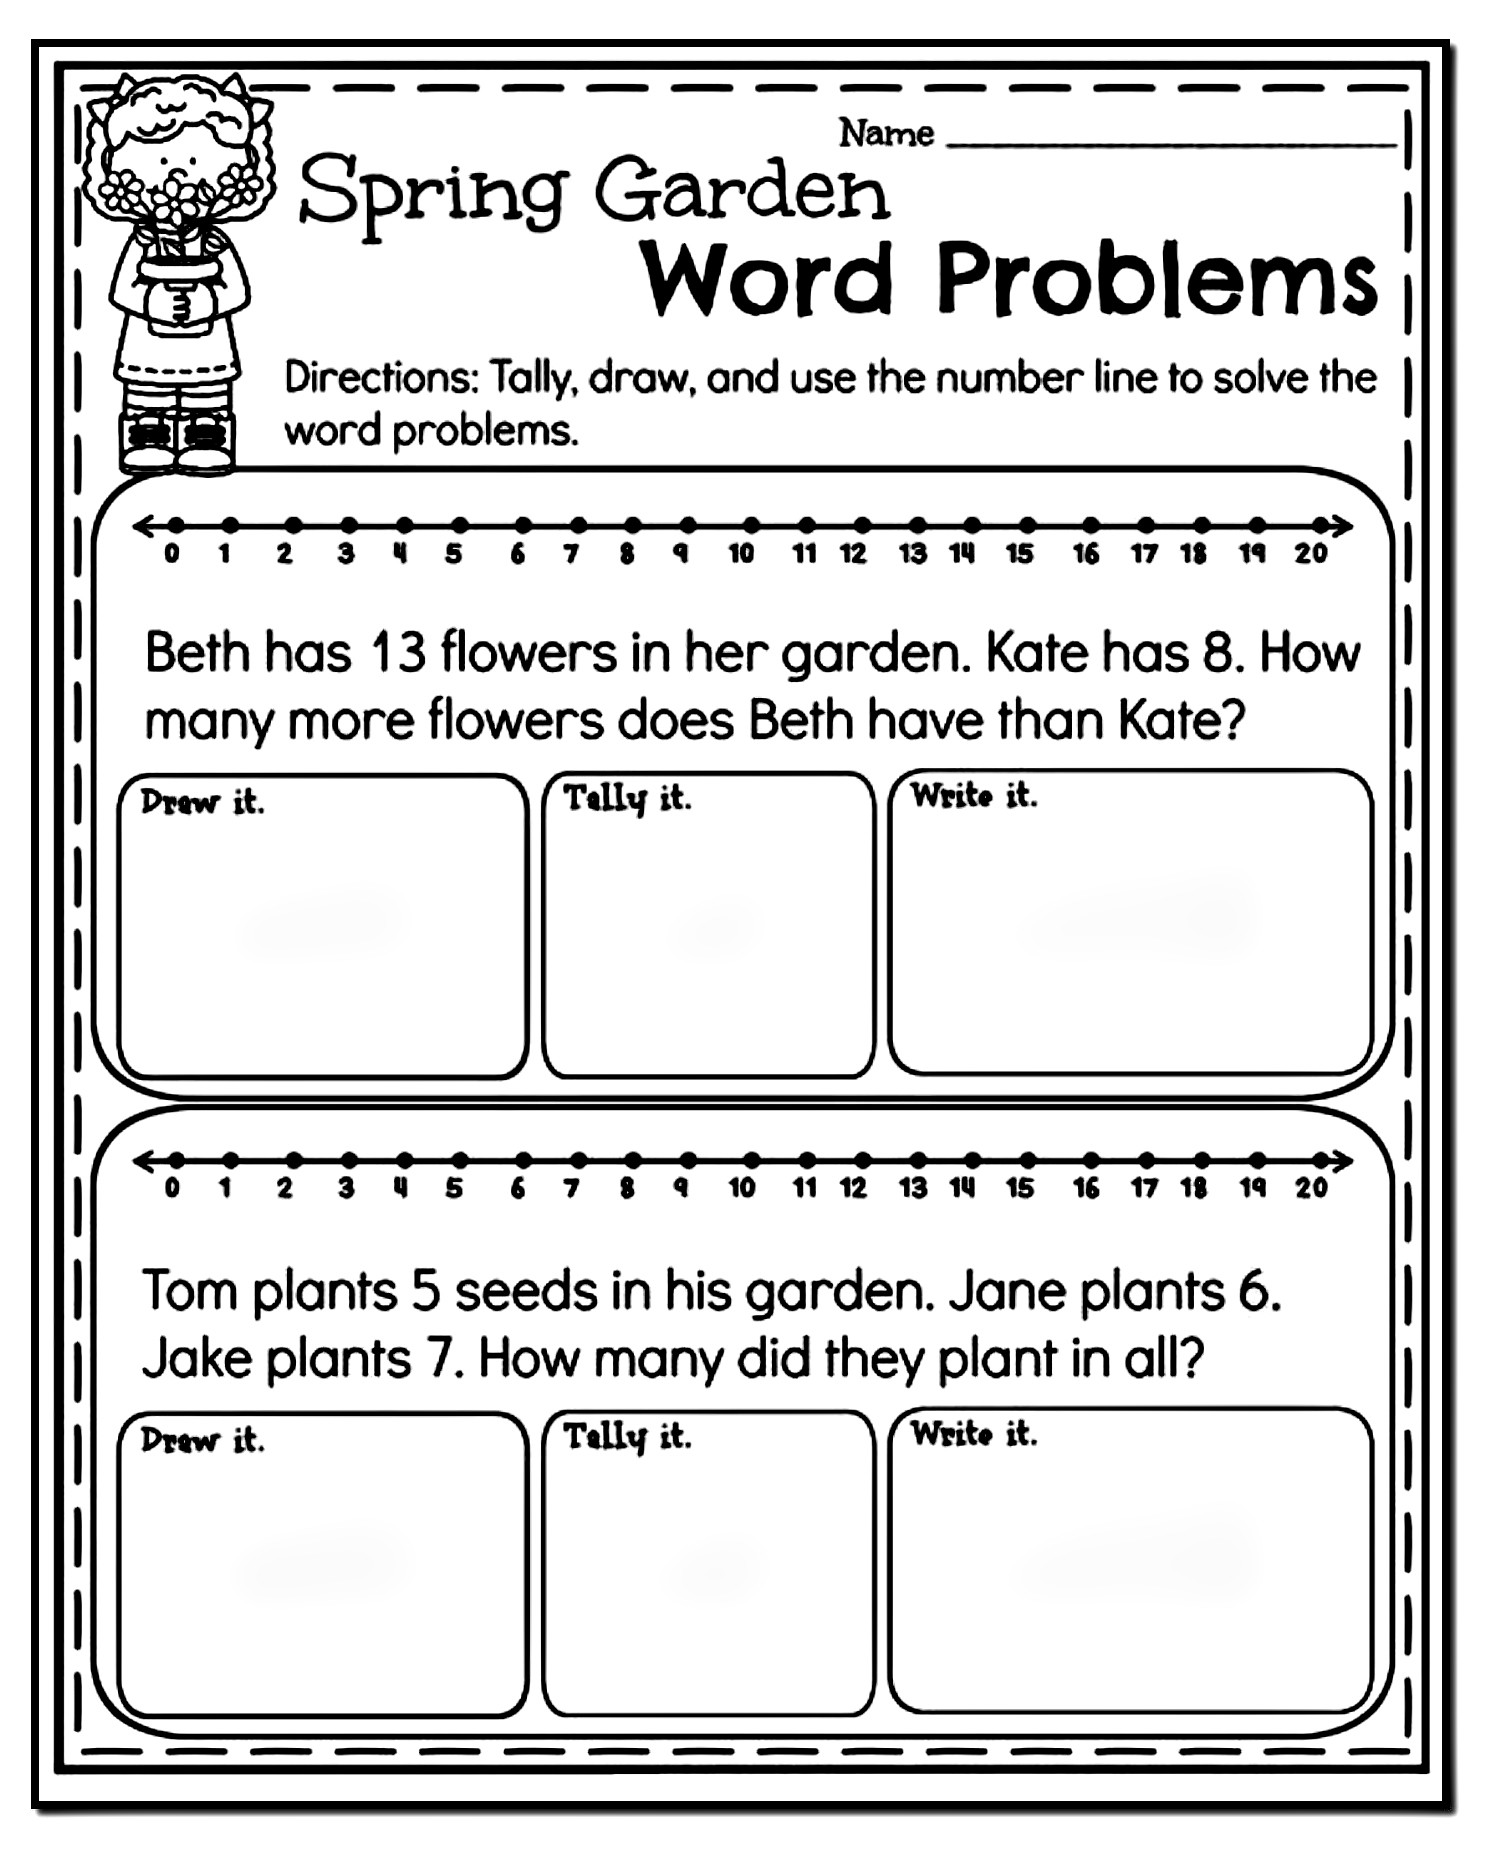 Word Problem Worksheets 1st Grade 10 Amazing 1st Grade Math Word Problems Worksheets Samples